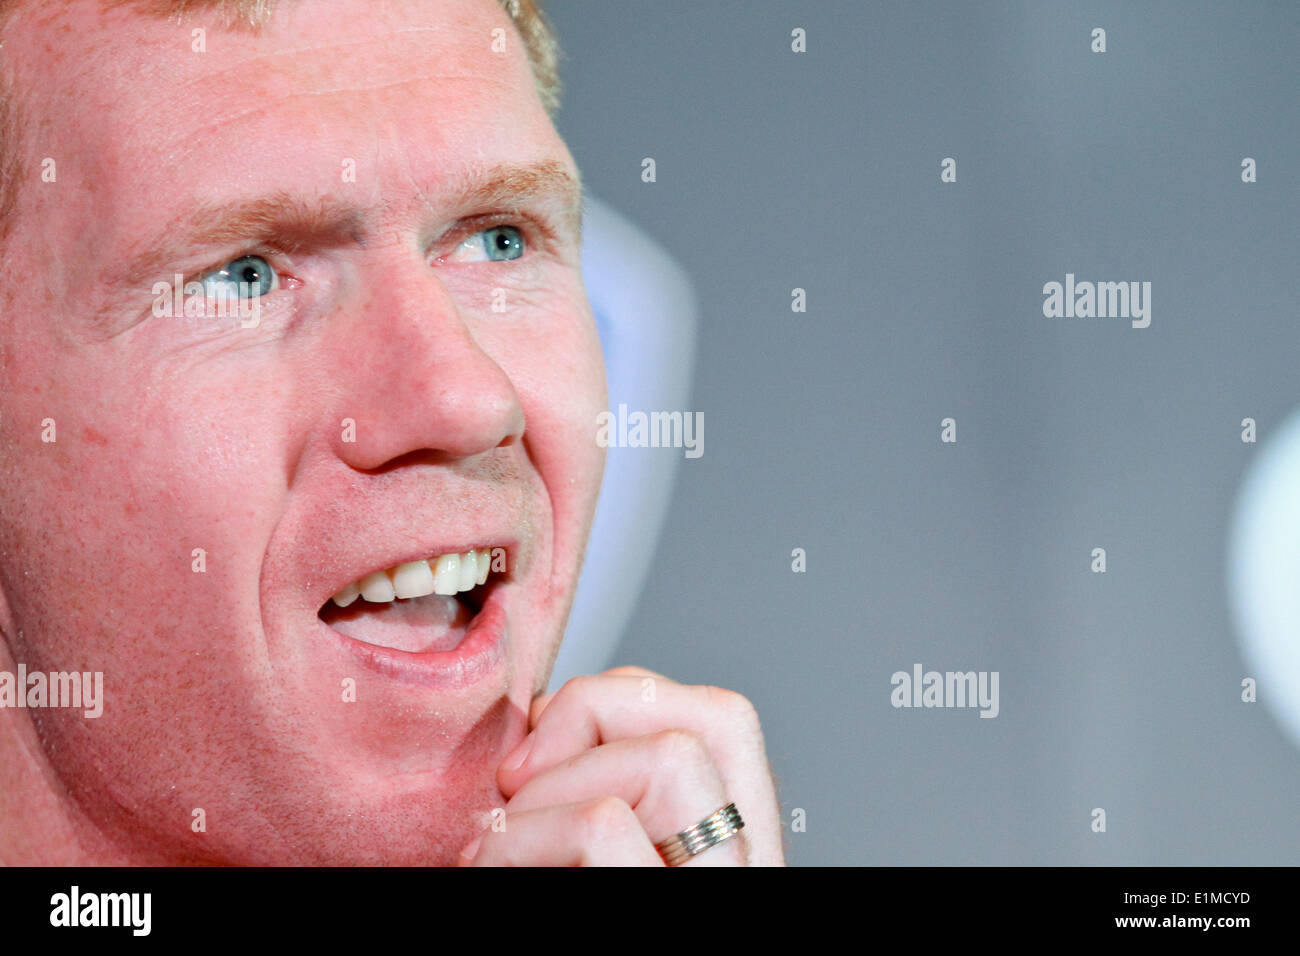 Manila, Philippines. 6th June, 2014. Makati, Philippines - Former Manchester United player Paul Scholes gestures during a press conference in Makati on June 6, 2014. Together with Andy Cole, they will play an exhibition game against local amatuer and professional football players. Credit:  Mark Cristino/NurPhoto/ZUMAPRESS.com/Alamy Live News - Stock Image